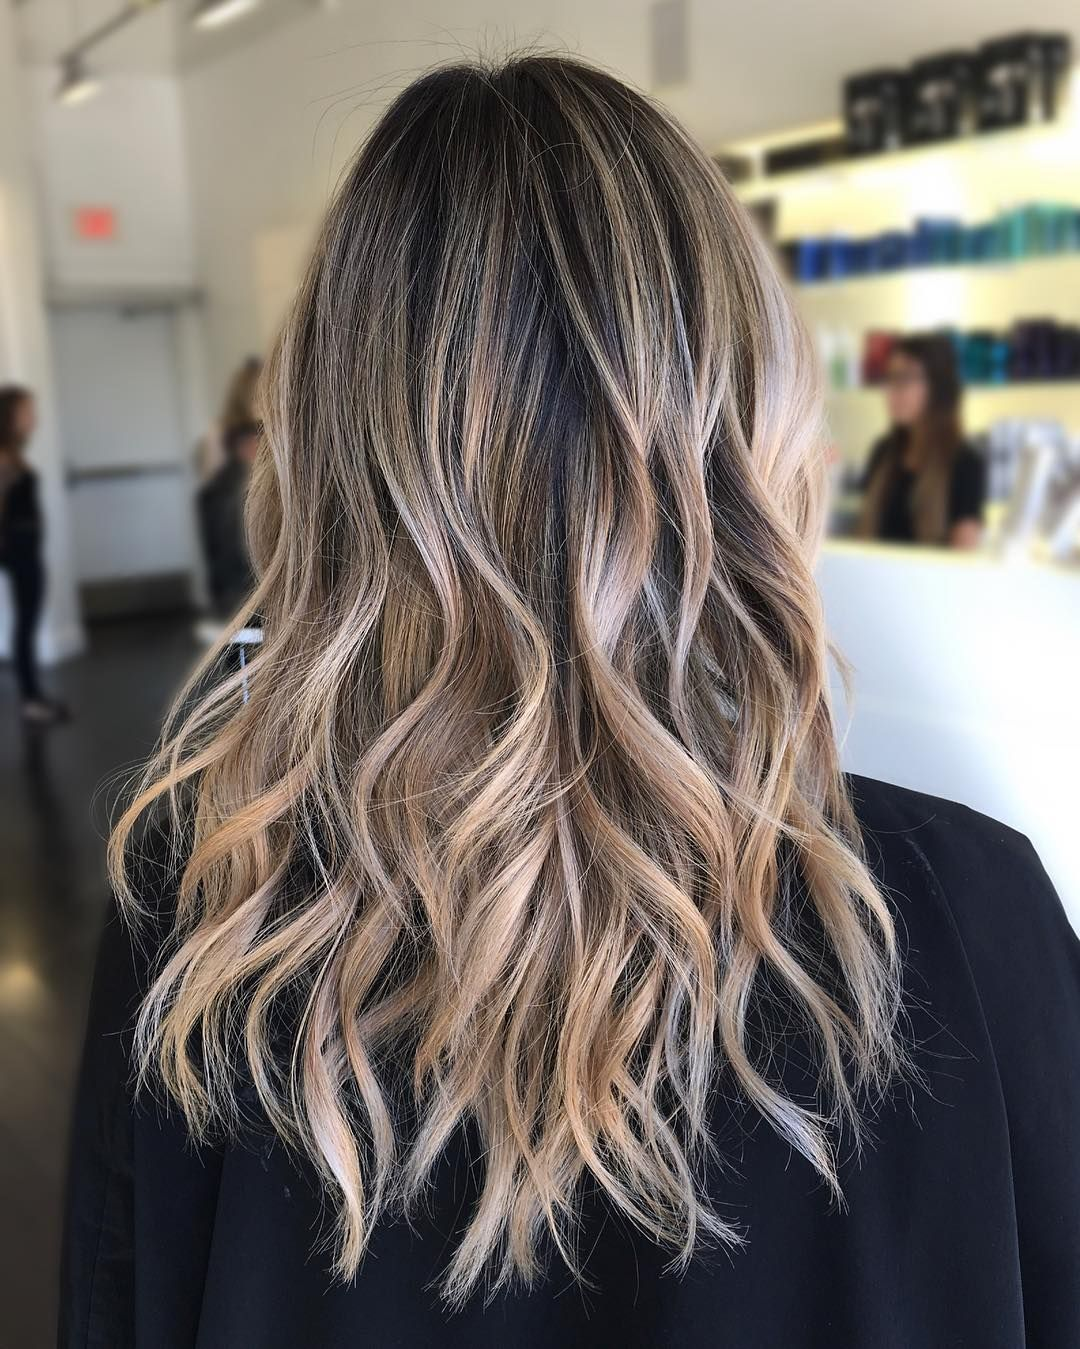 blonde hair with silver highlights 2016 | Hair styles | Pinterest |  Highlights 2016, Silver highlights and Blondes